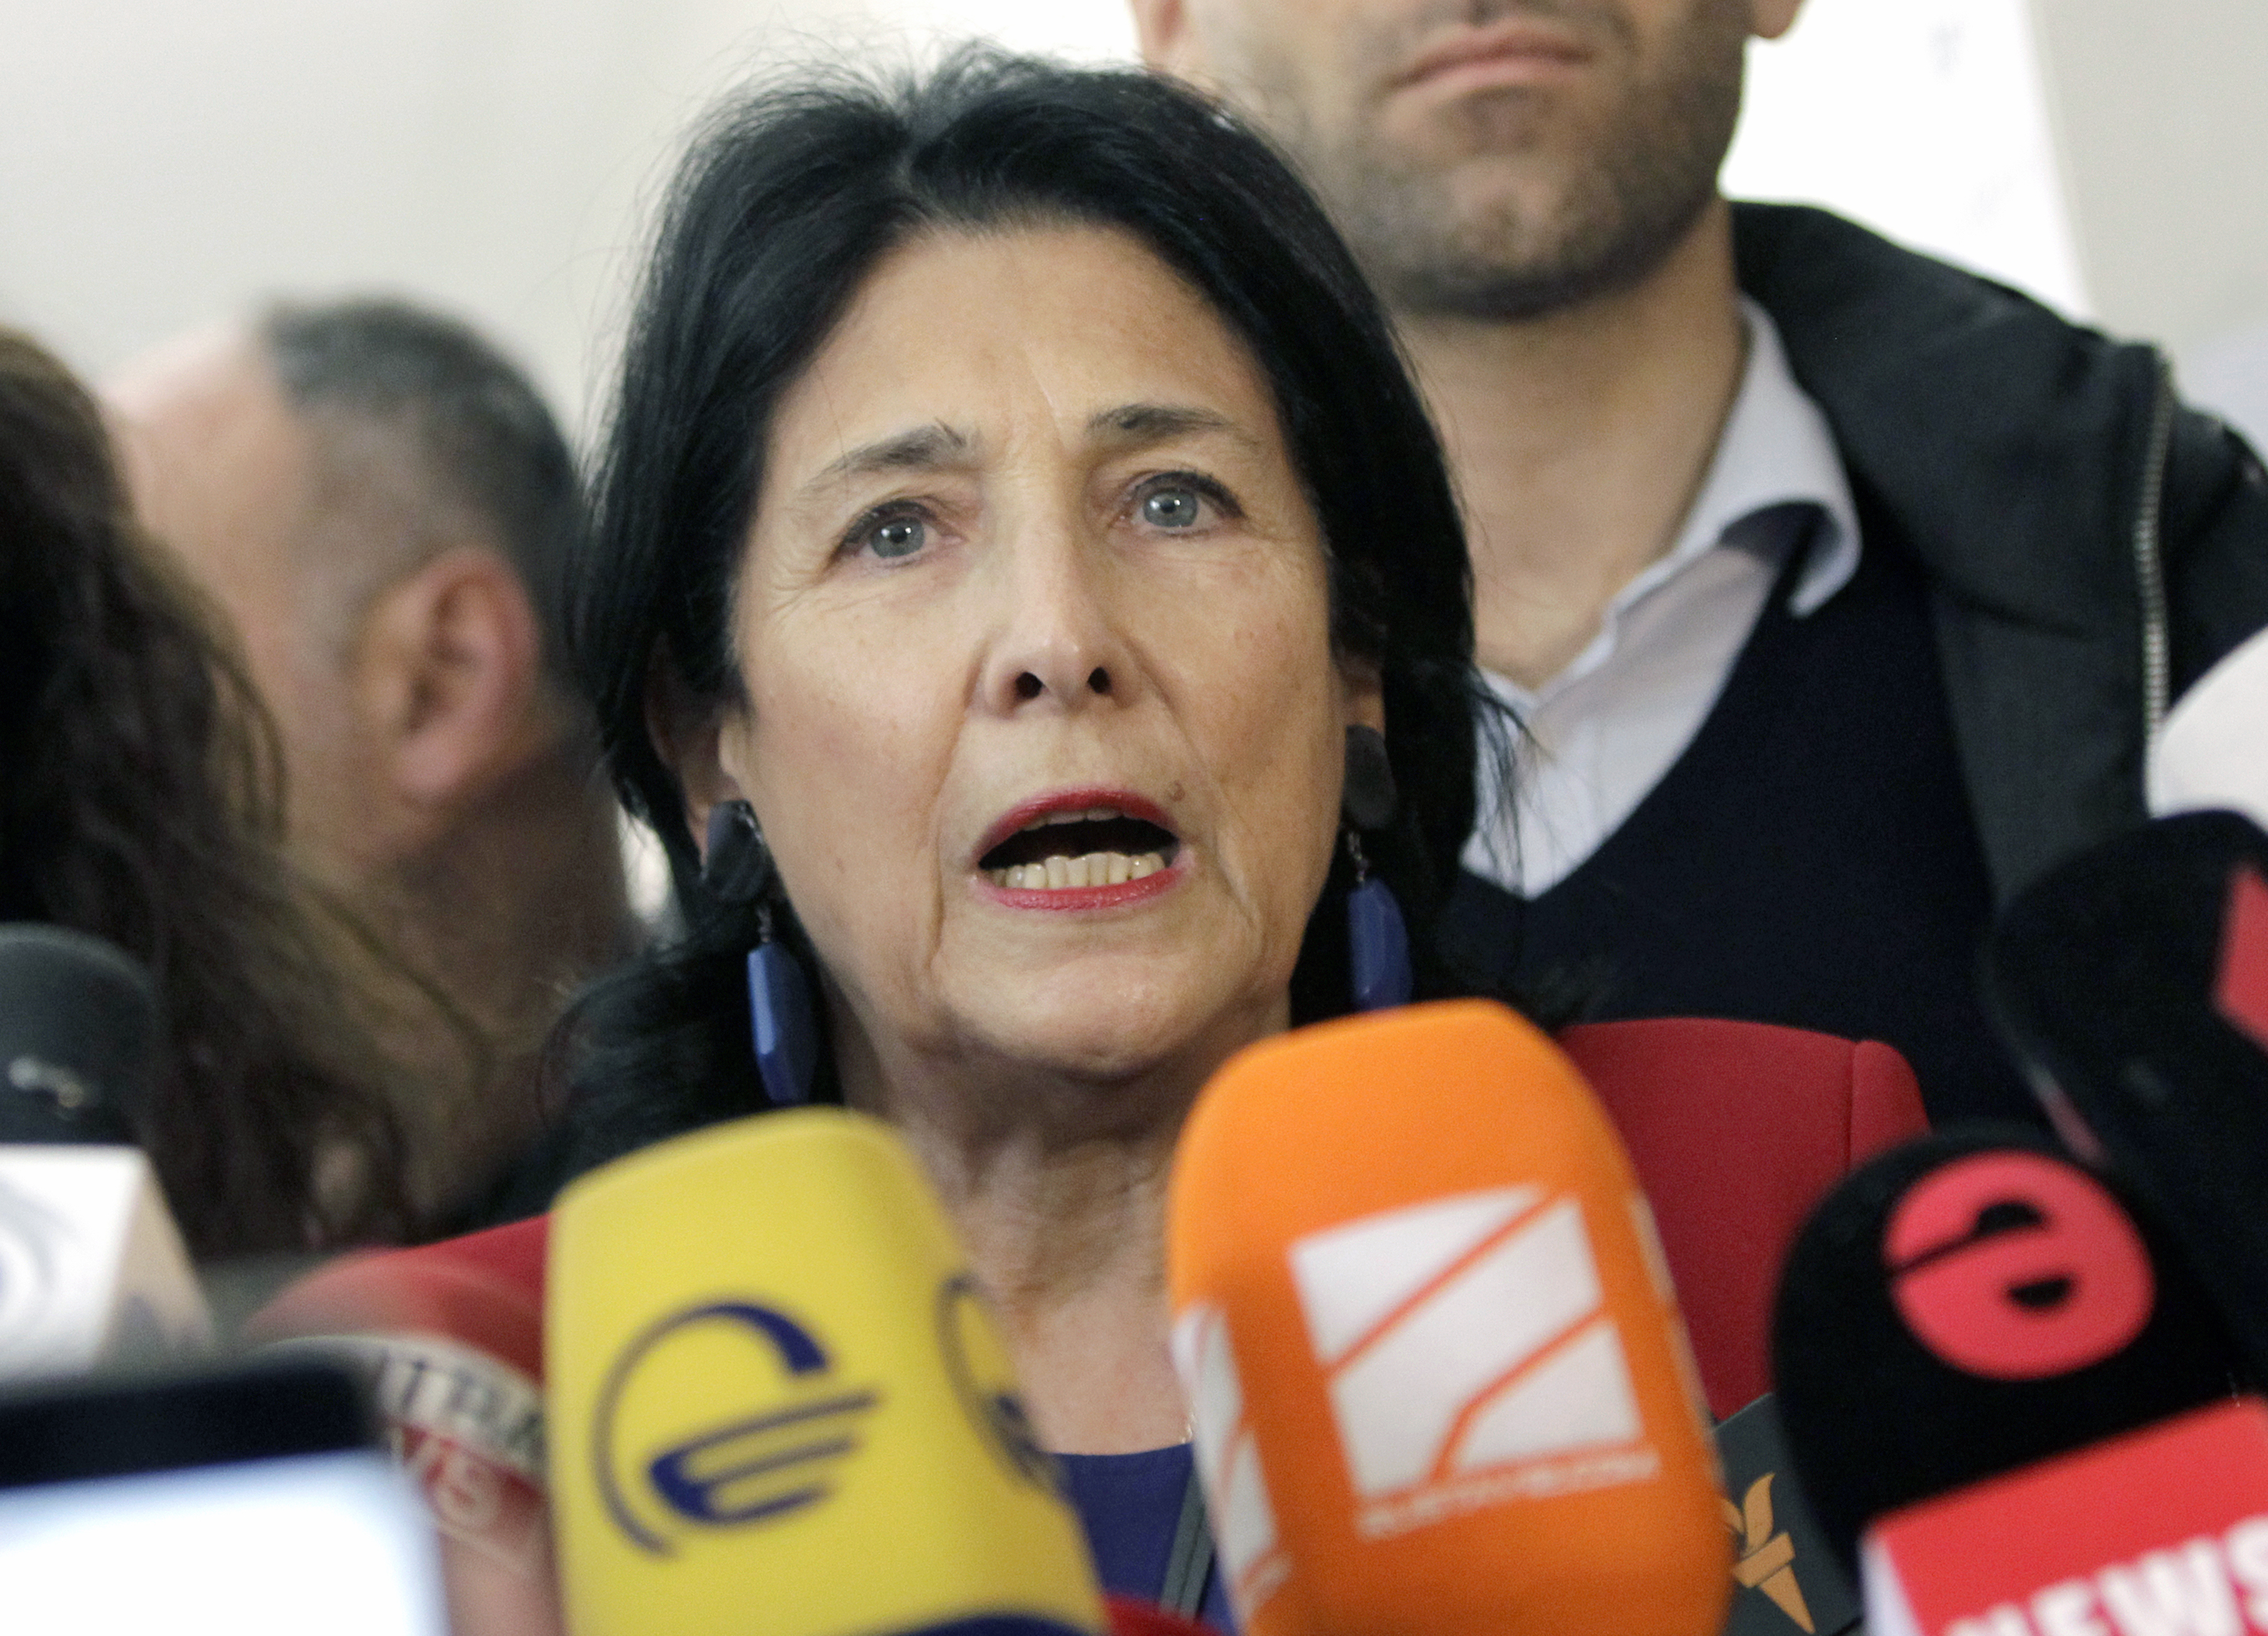 Salome Zurabishvili, former Georgian Foreign minister and presidential candidate, speaks to the media at a polling station in Tbilisi, Georgia, Oct. 28, 2018.